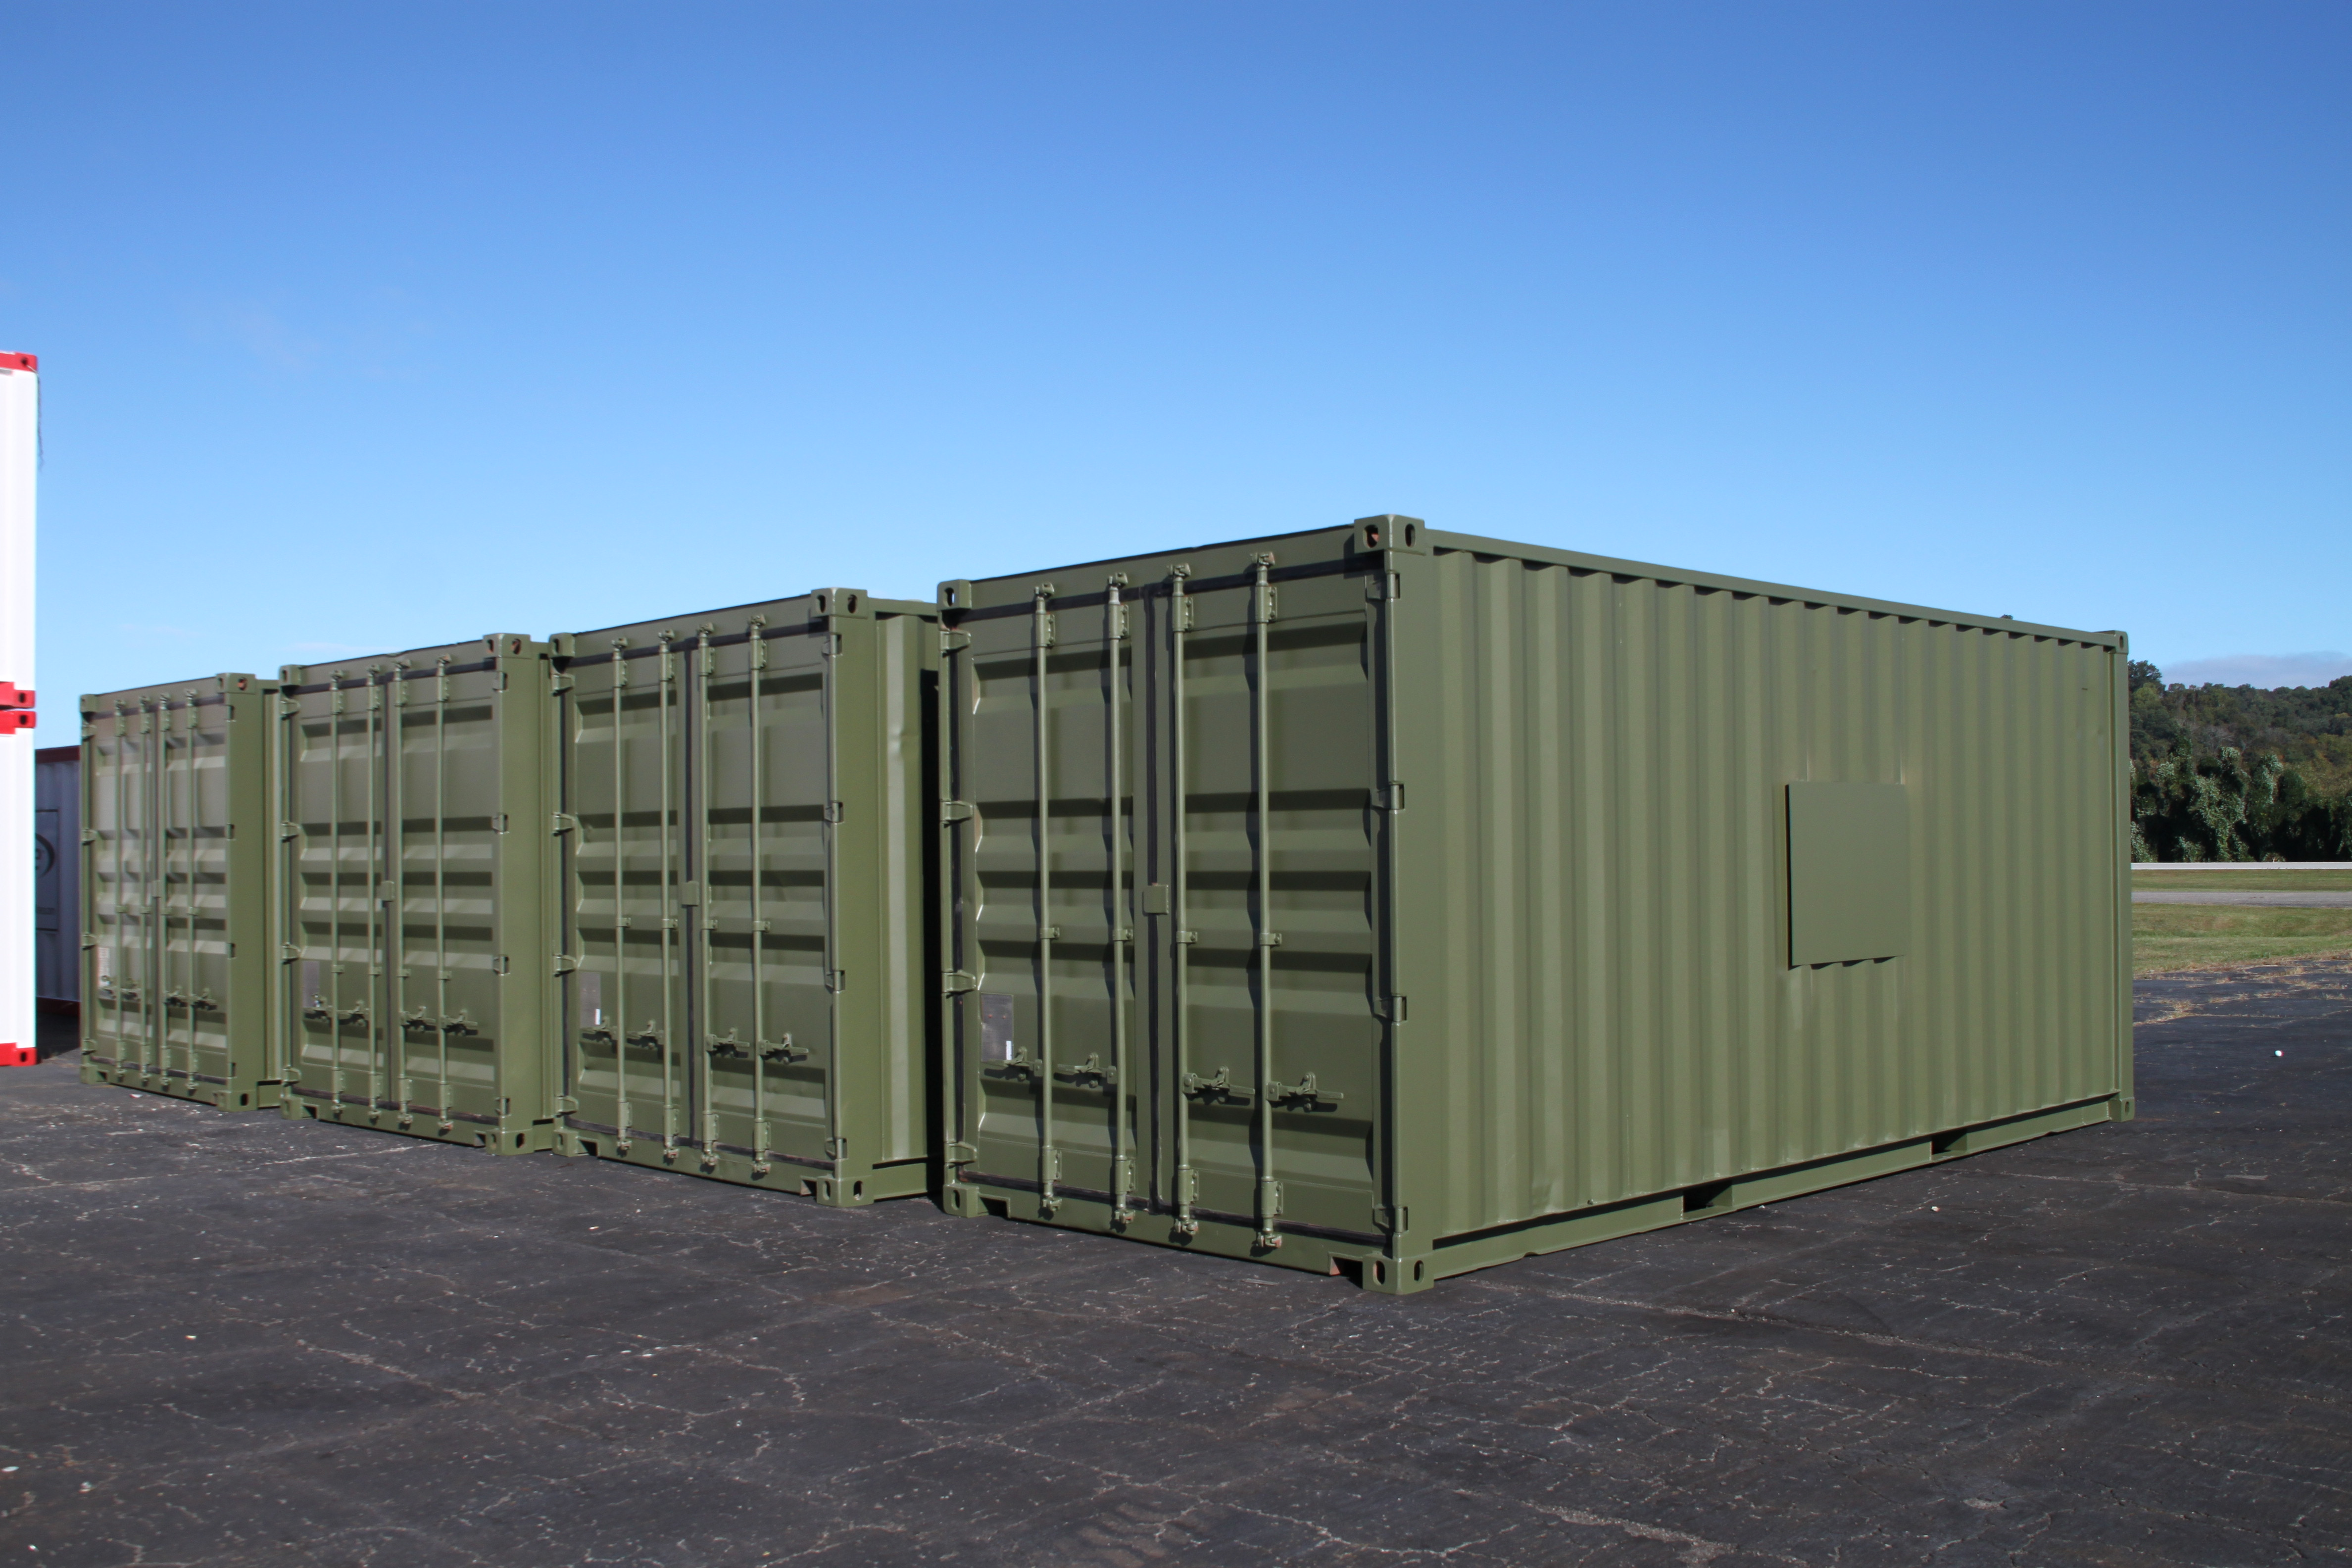 DropBox Inc., IP-1 Container, IP-1, IP1, nuclear storage, shipping container modifications